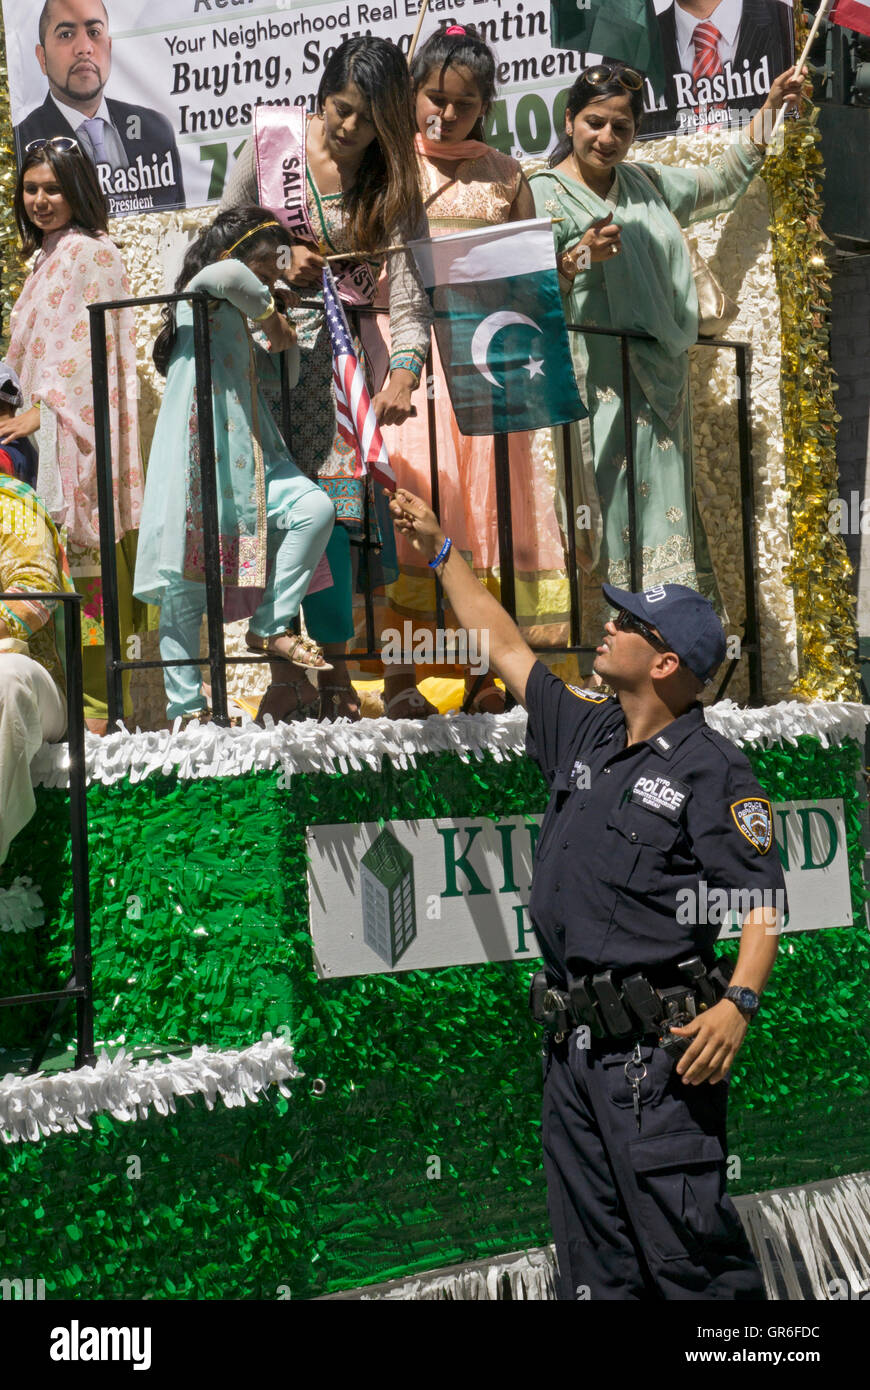 An New York City policeman retrieves an American flag for a young Pakistani girl at the Pakistan Day Parade in Manhattan. - Stock Image